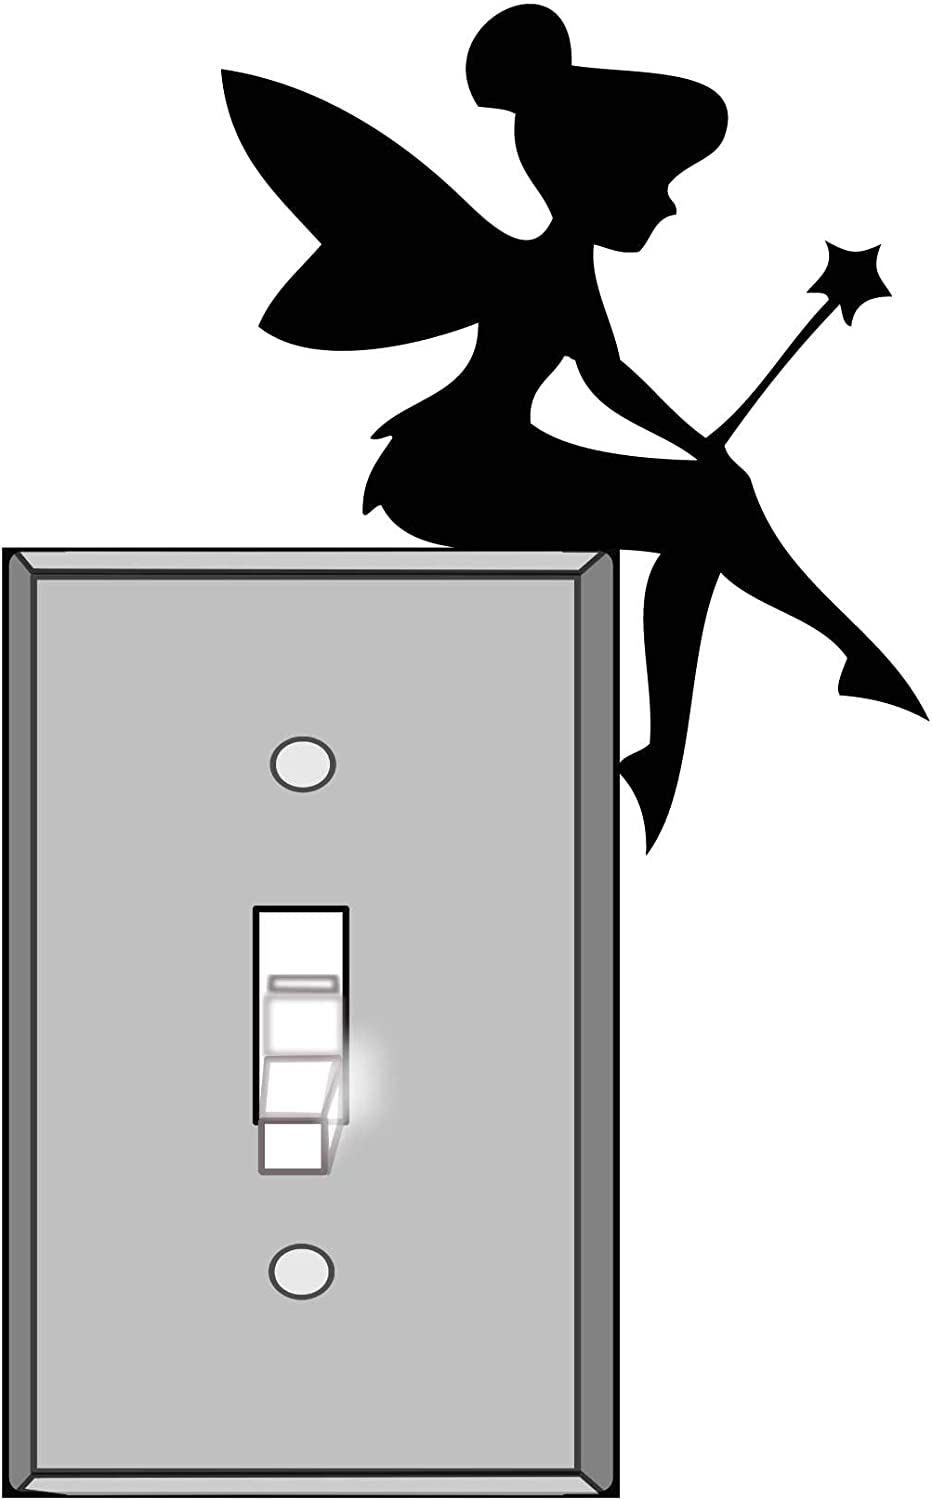 Lightswitch Vinyl Decal Sticker - Tinkerbell Fairy - For wall, vehicle, computer, home decor